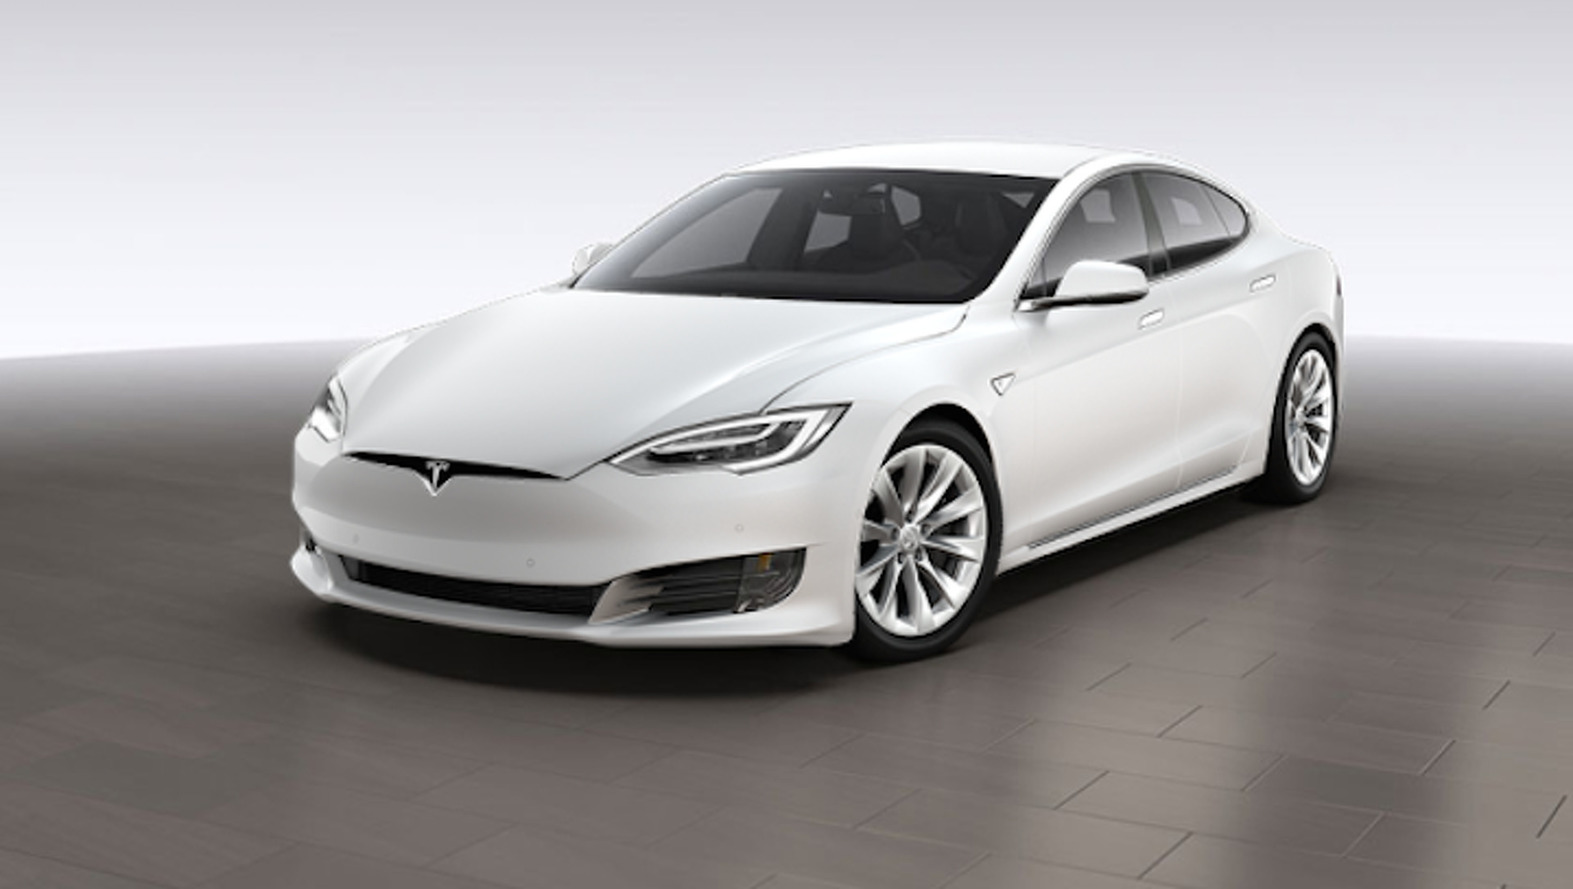 Tesla Model S Hits Top 10 LIst Of Most Popular Used EVs